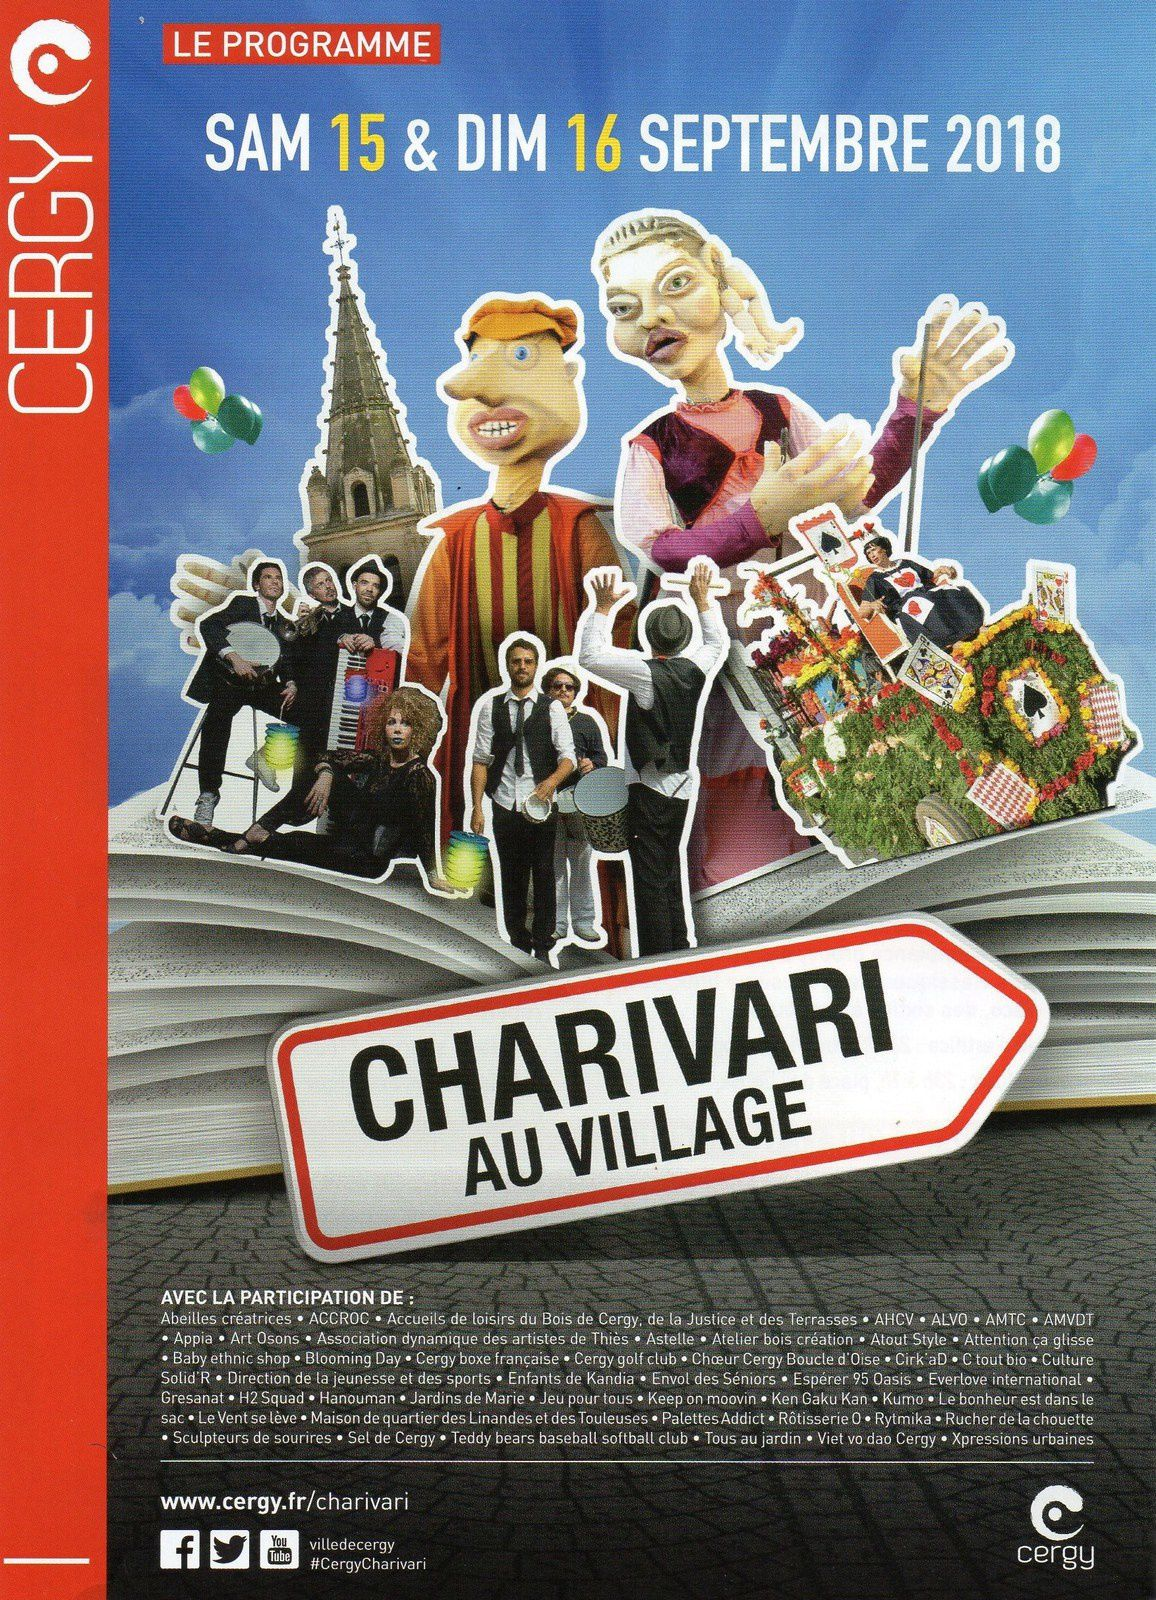 Charivari 2018 à Cergy Village